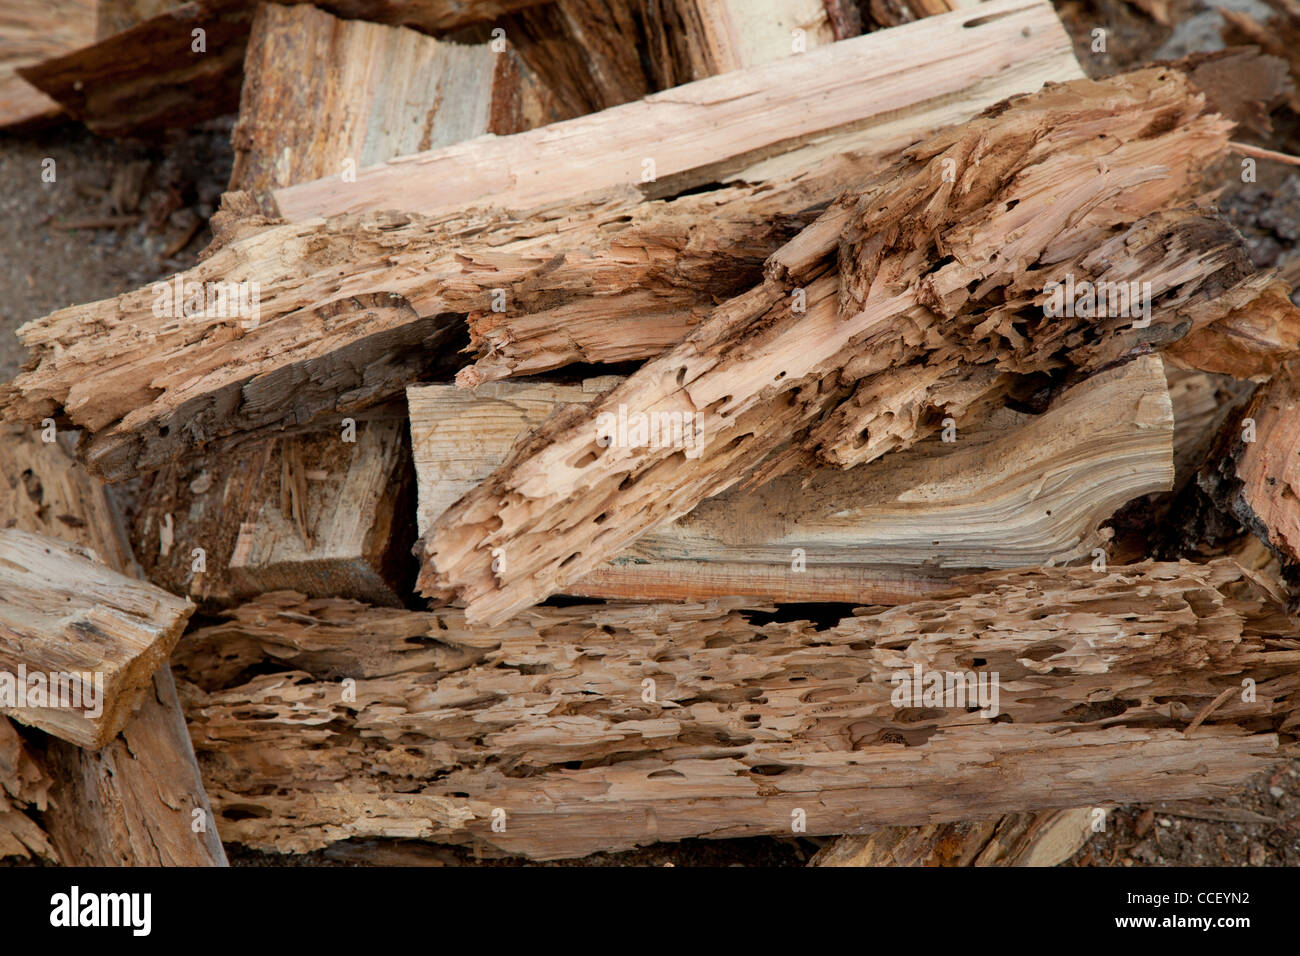 Close-up view of weathered driftwood - Stock Image